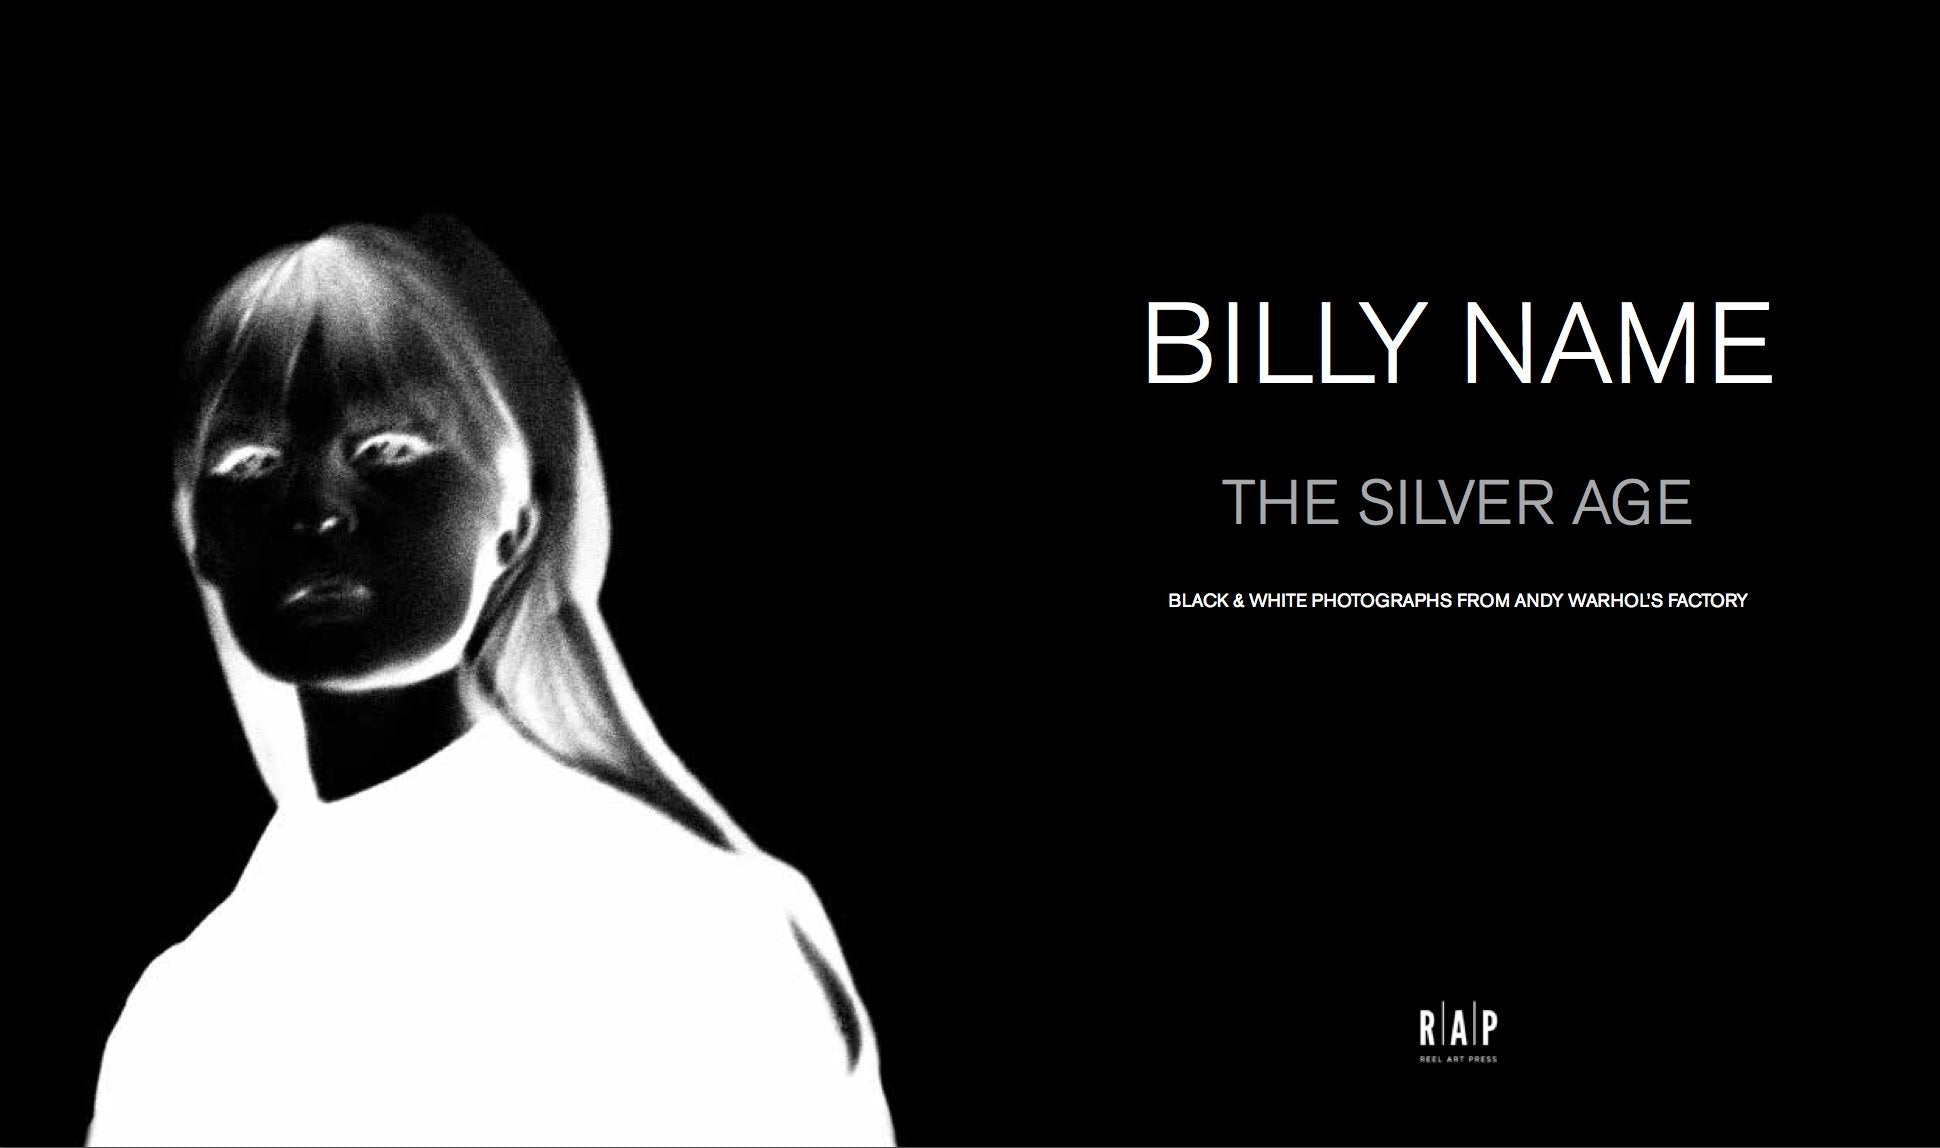 Billy Name: The Silver Age - Black and White Photographs from Andy Warhol's Factory